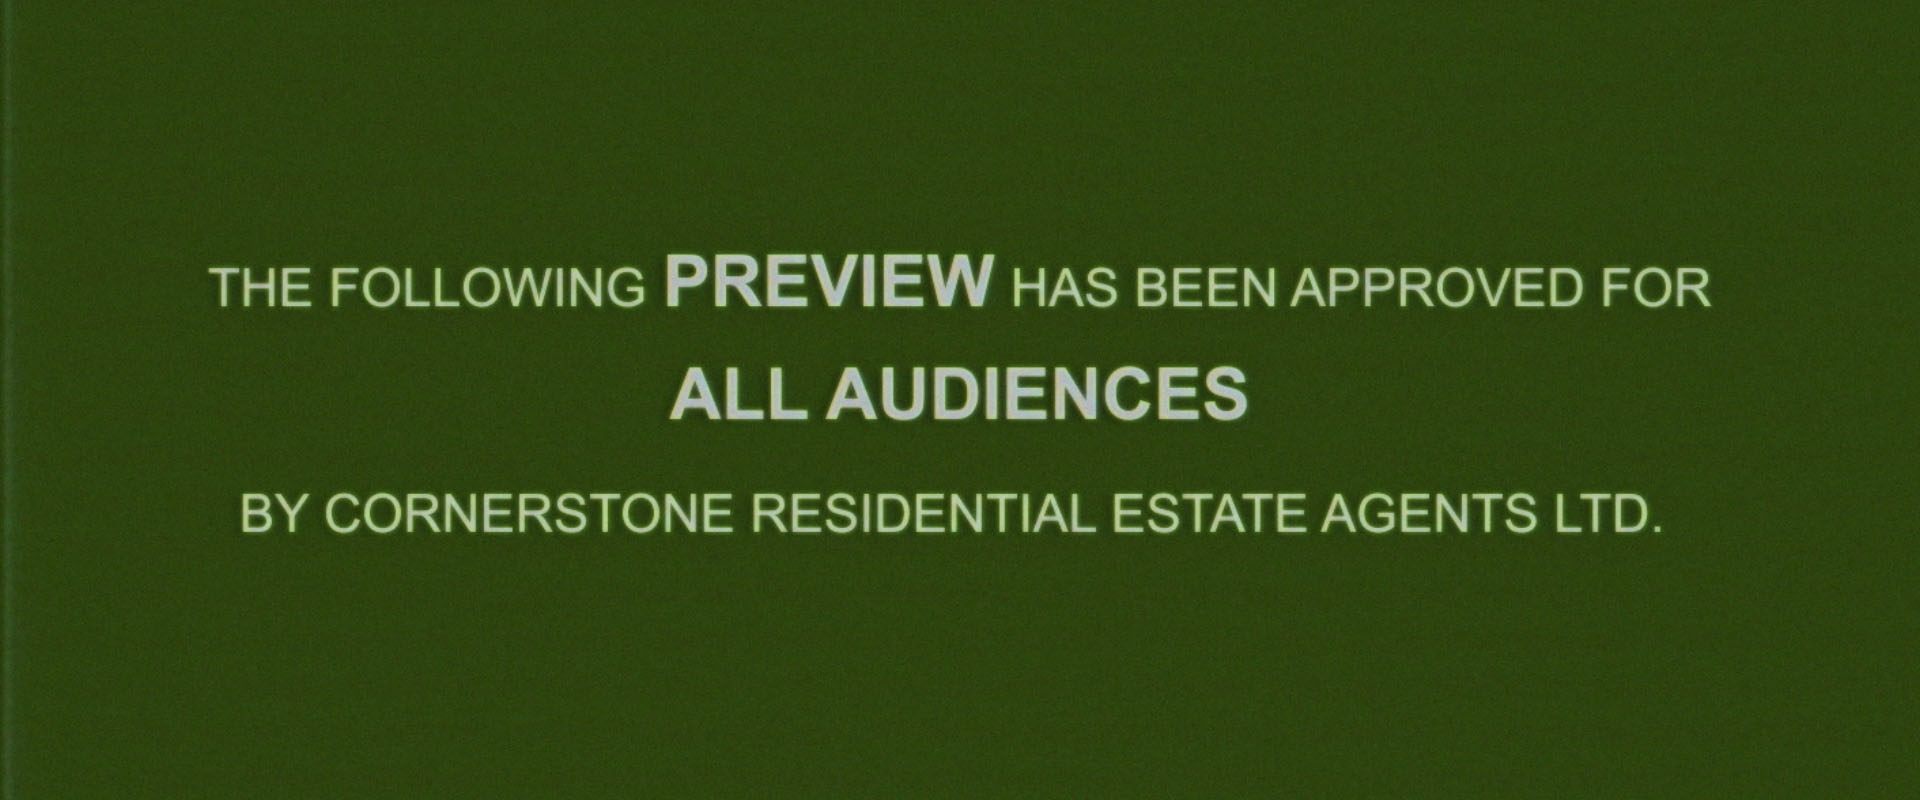 cornerstone residential estate agents brand video parody thumbnail